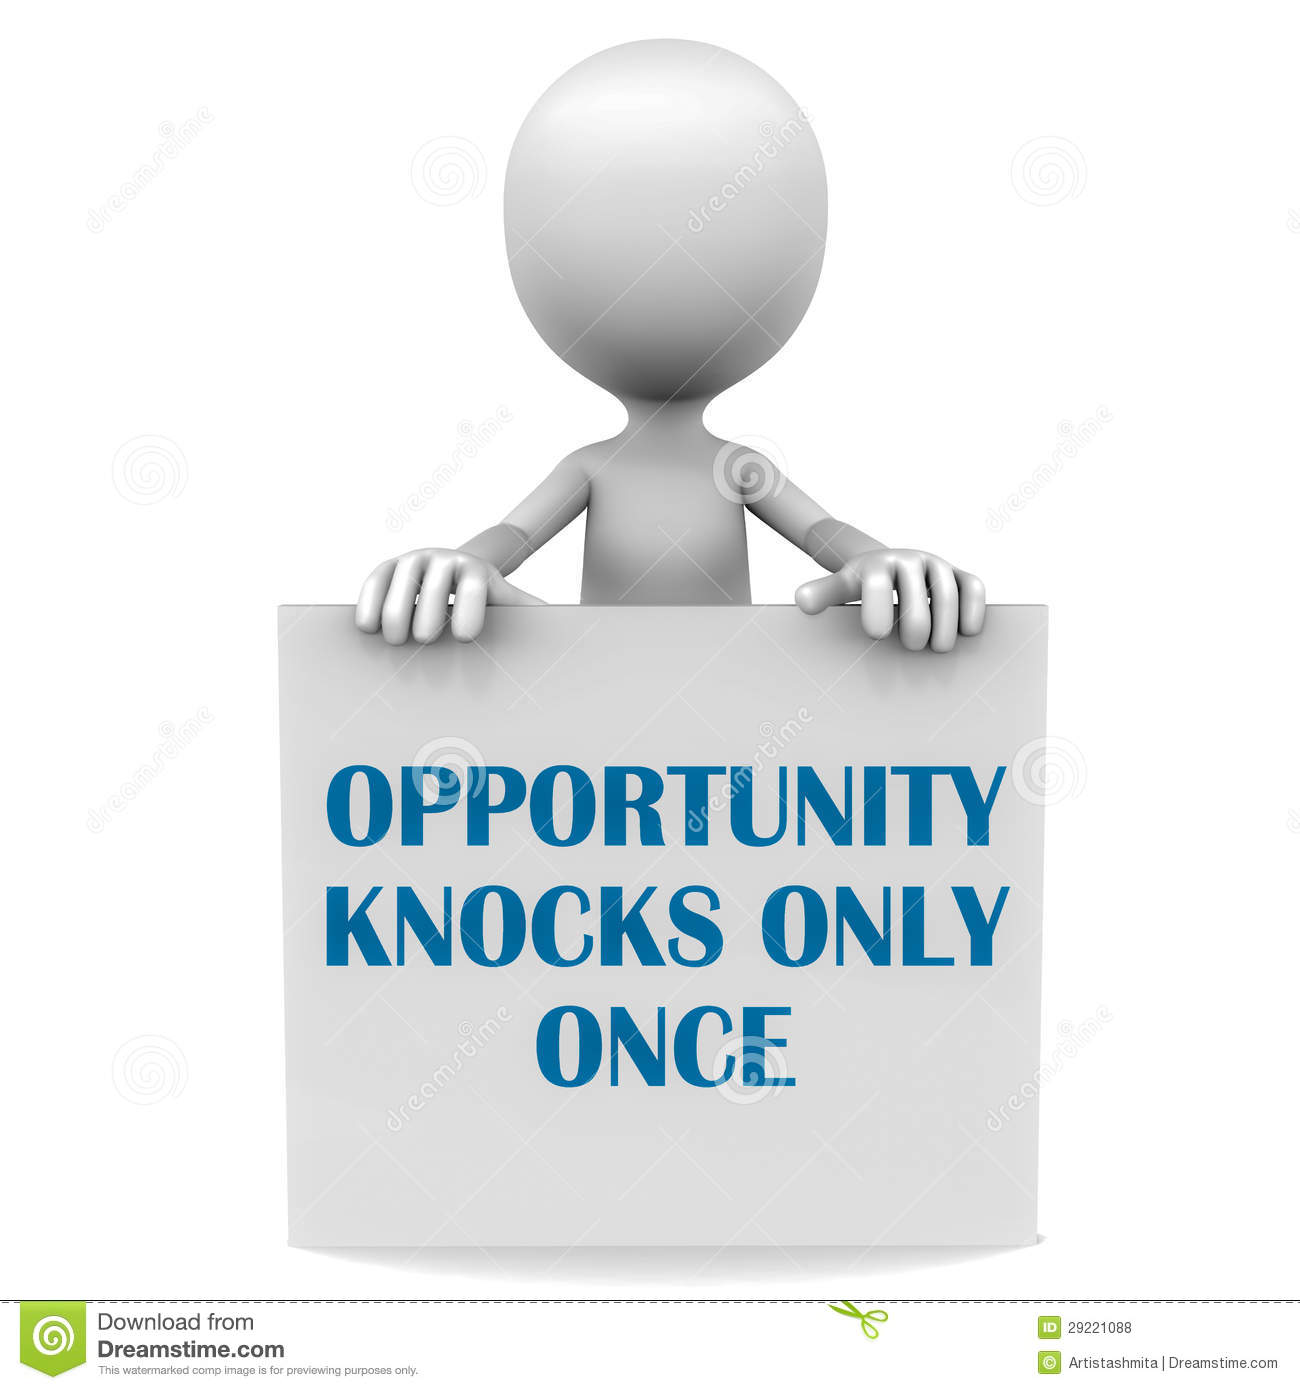 opportunity knocks once essay A proverb runs, ' opportunity knocks at every door but only once' the proverb clearly clarifies that god has given us an opportunity of living in this world but only once how best we can use this opportunity depends on us lily tomlin says : 'the happiest of people don't necessarily have the best of.